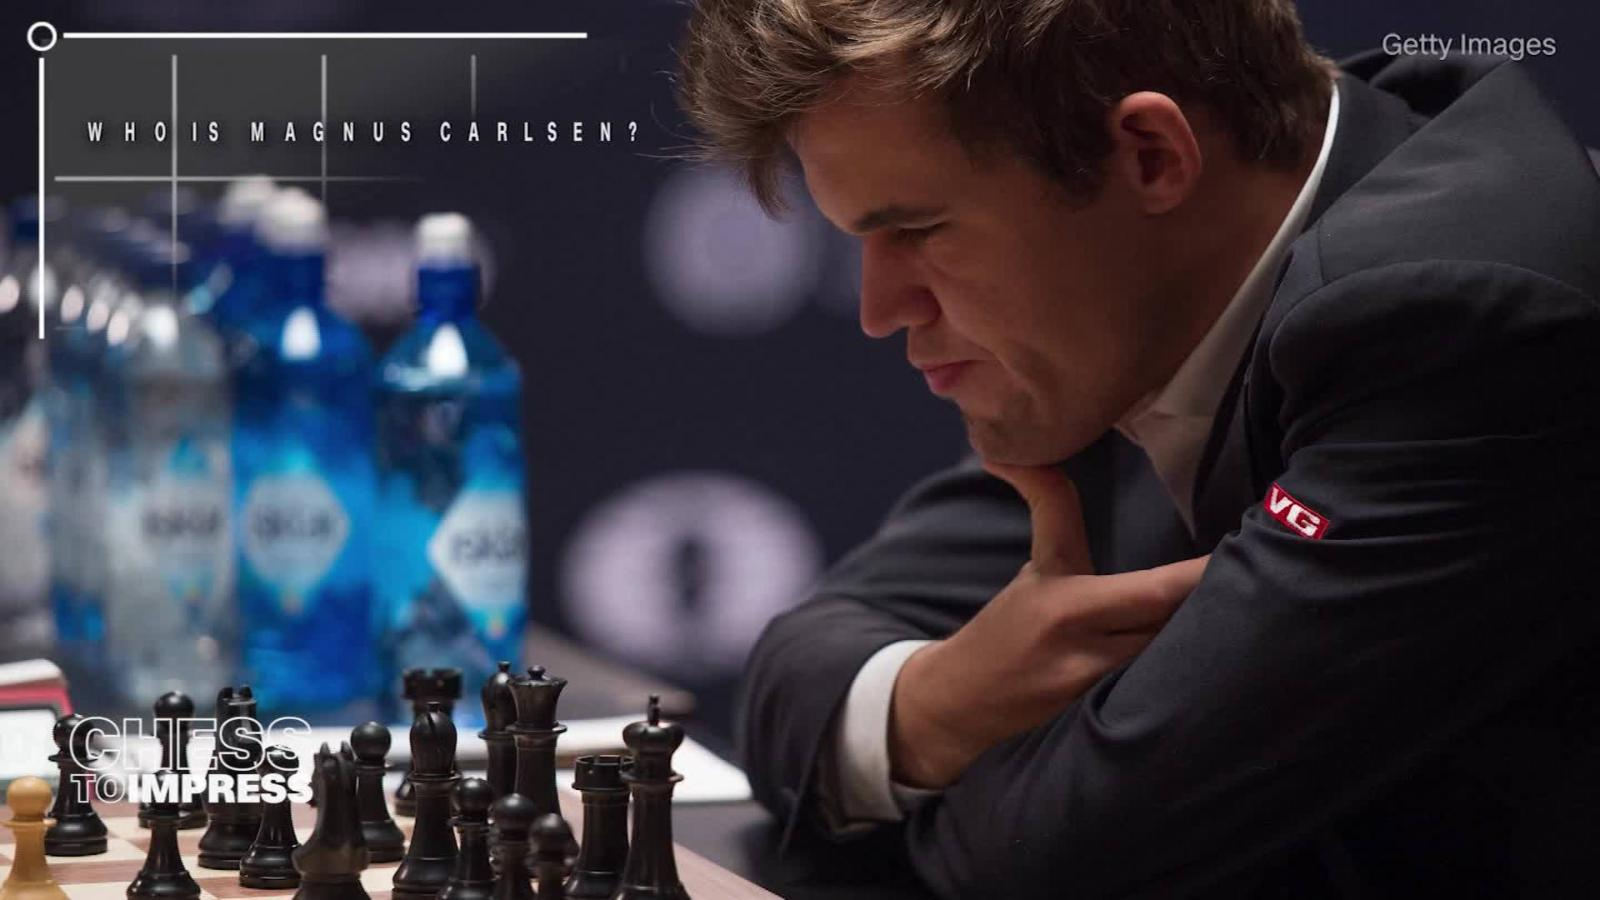 The mighty Magnus Carlsen